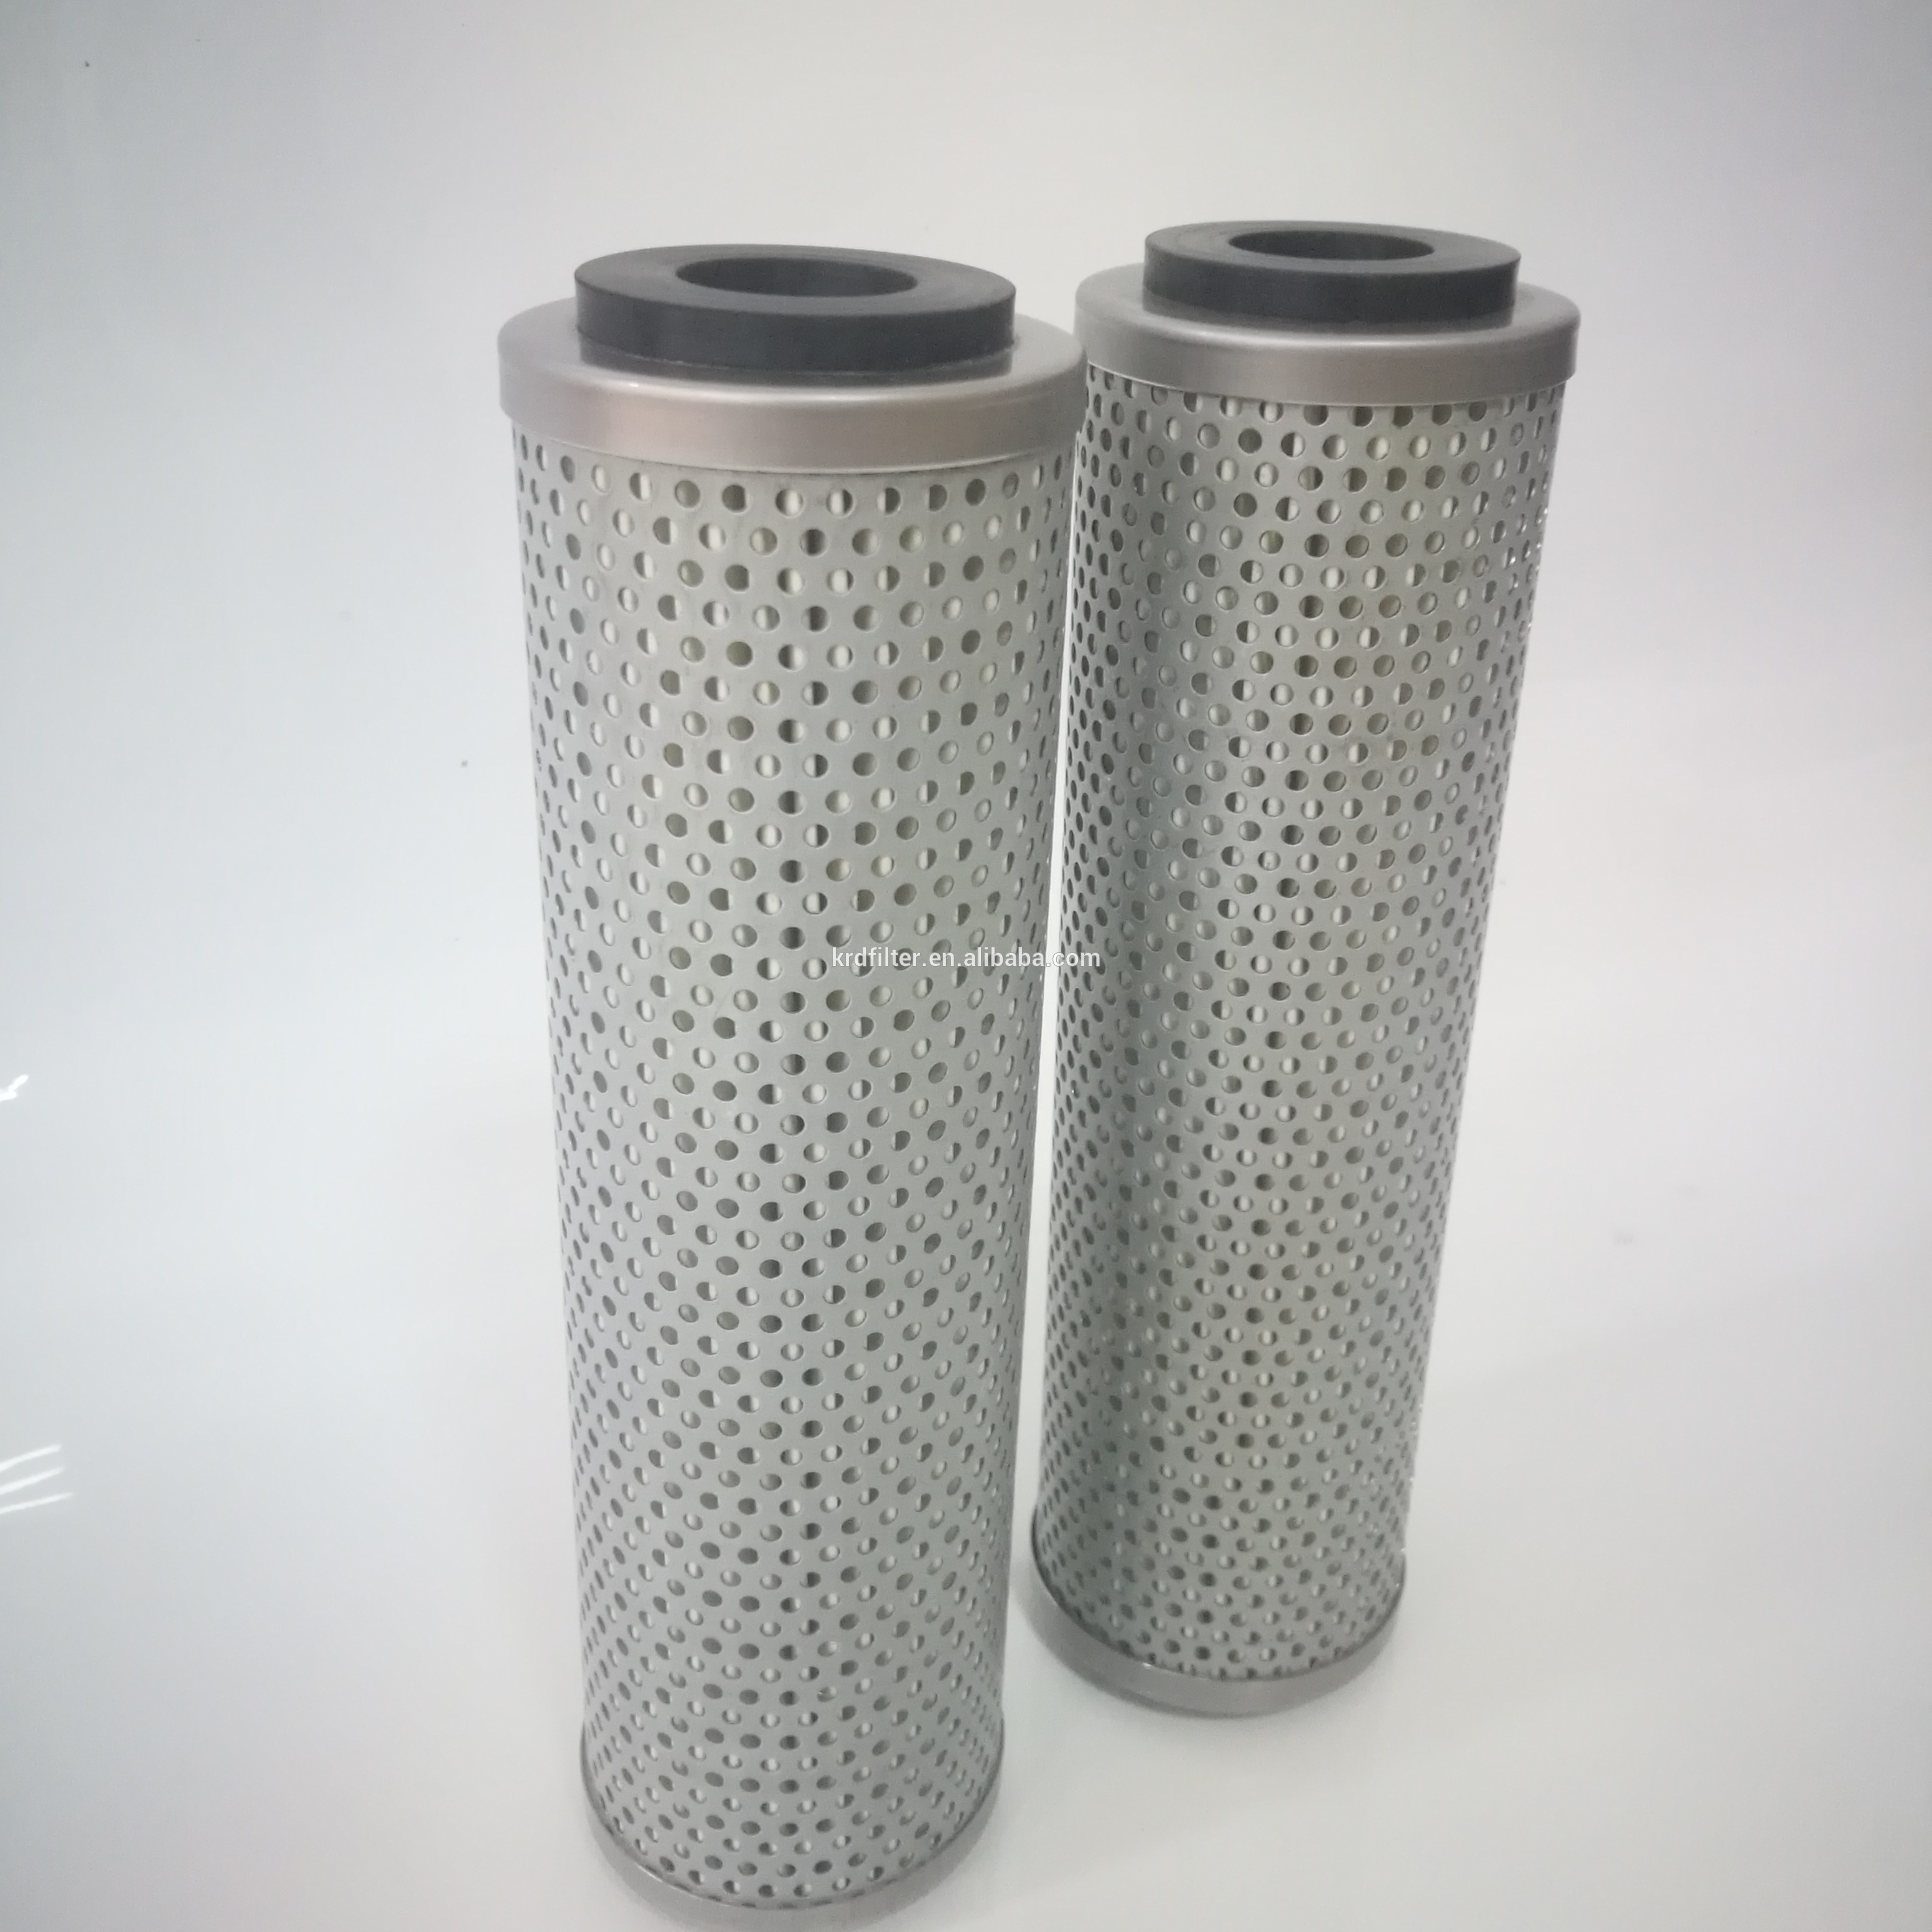 standard penetration test Replacement 1 micron filter industrial hydraulic oil filter 2056714